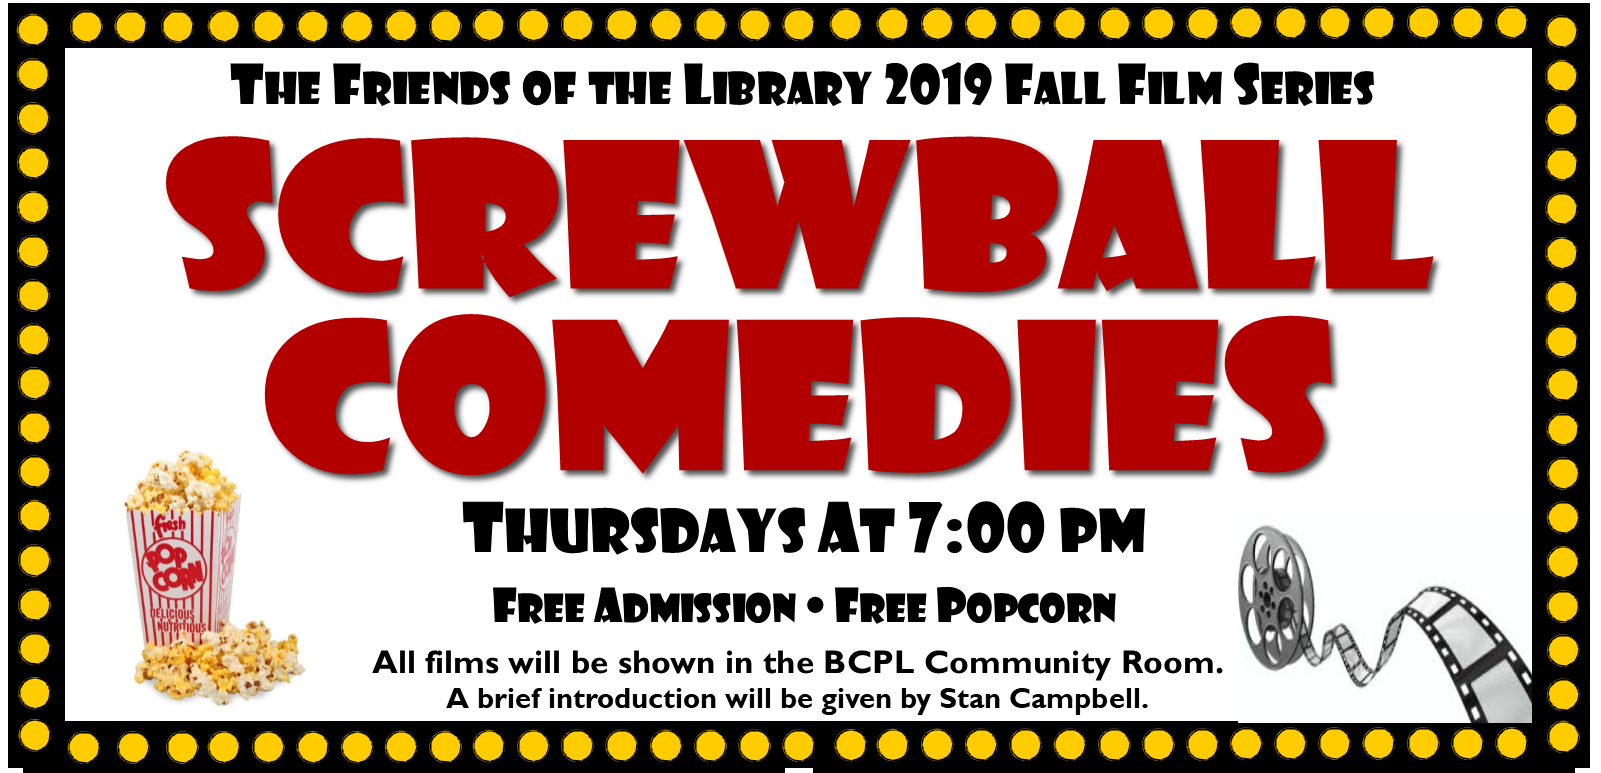 Friends of the Library Fall Film Series: September 5, The Awful Truth; September 12, Nothing Sacred; Septermber 19, The Lady Eve; September 26, The Palm Beach Story; October 3, The Miracle of Morgan's Creek; October 10, What's Up, Doc?